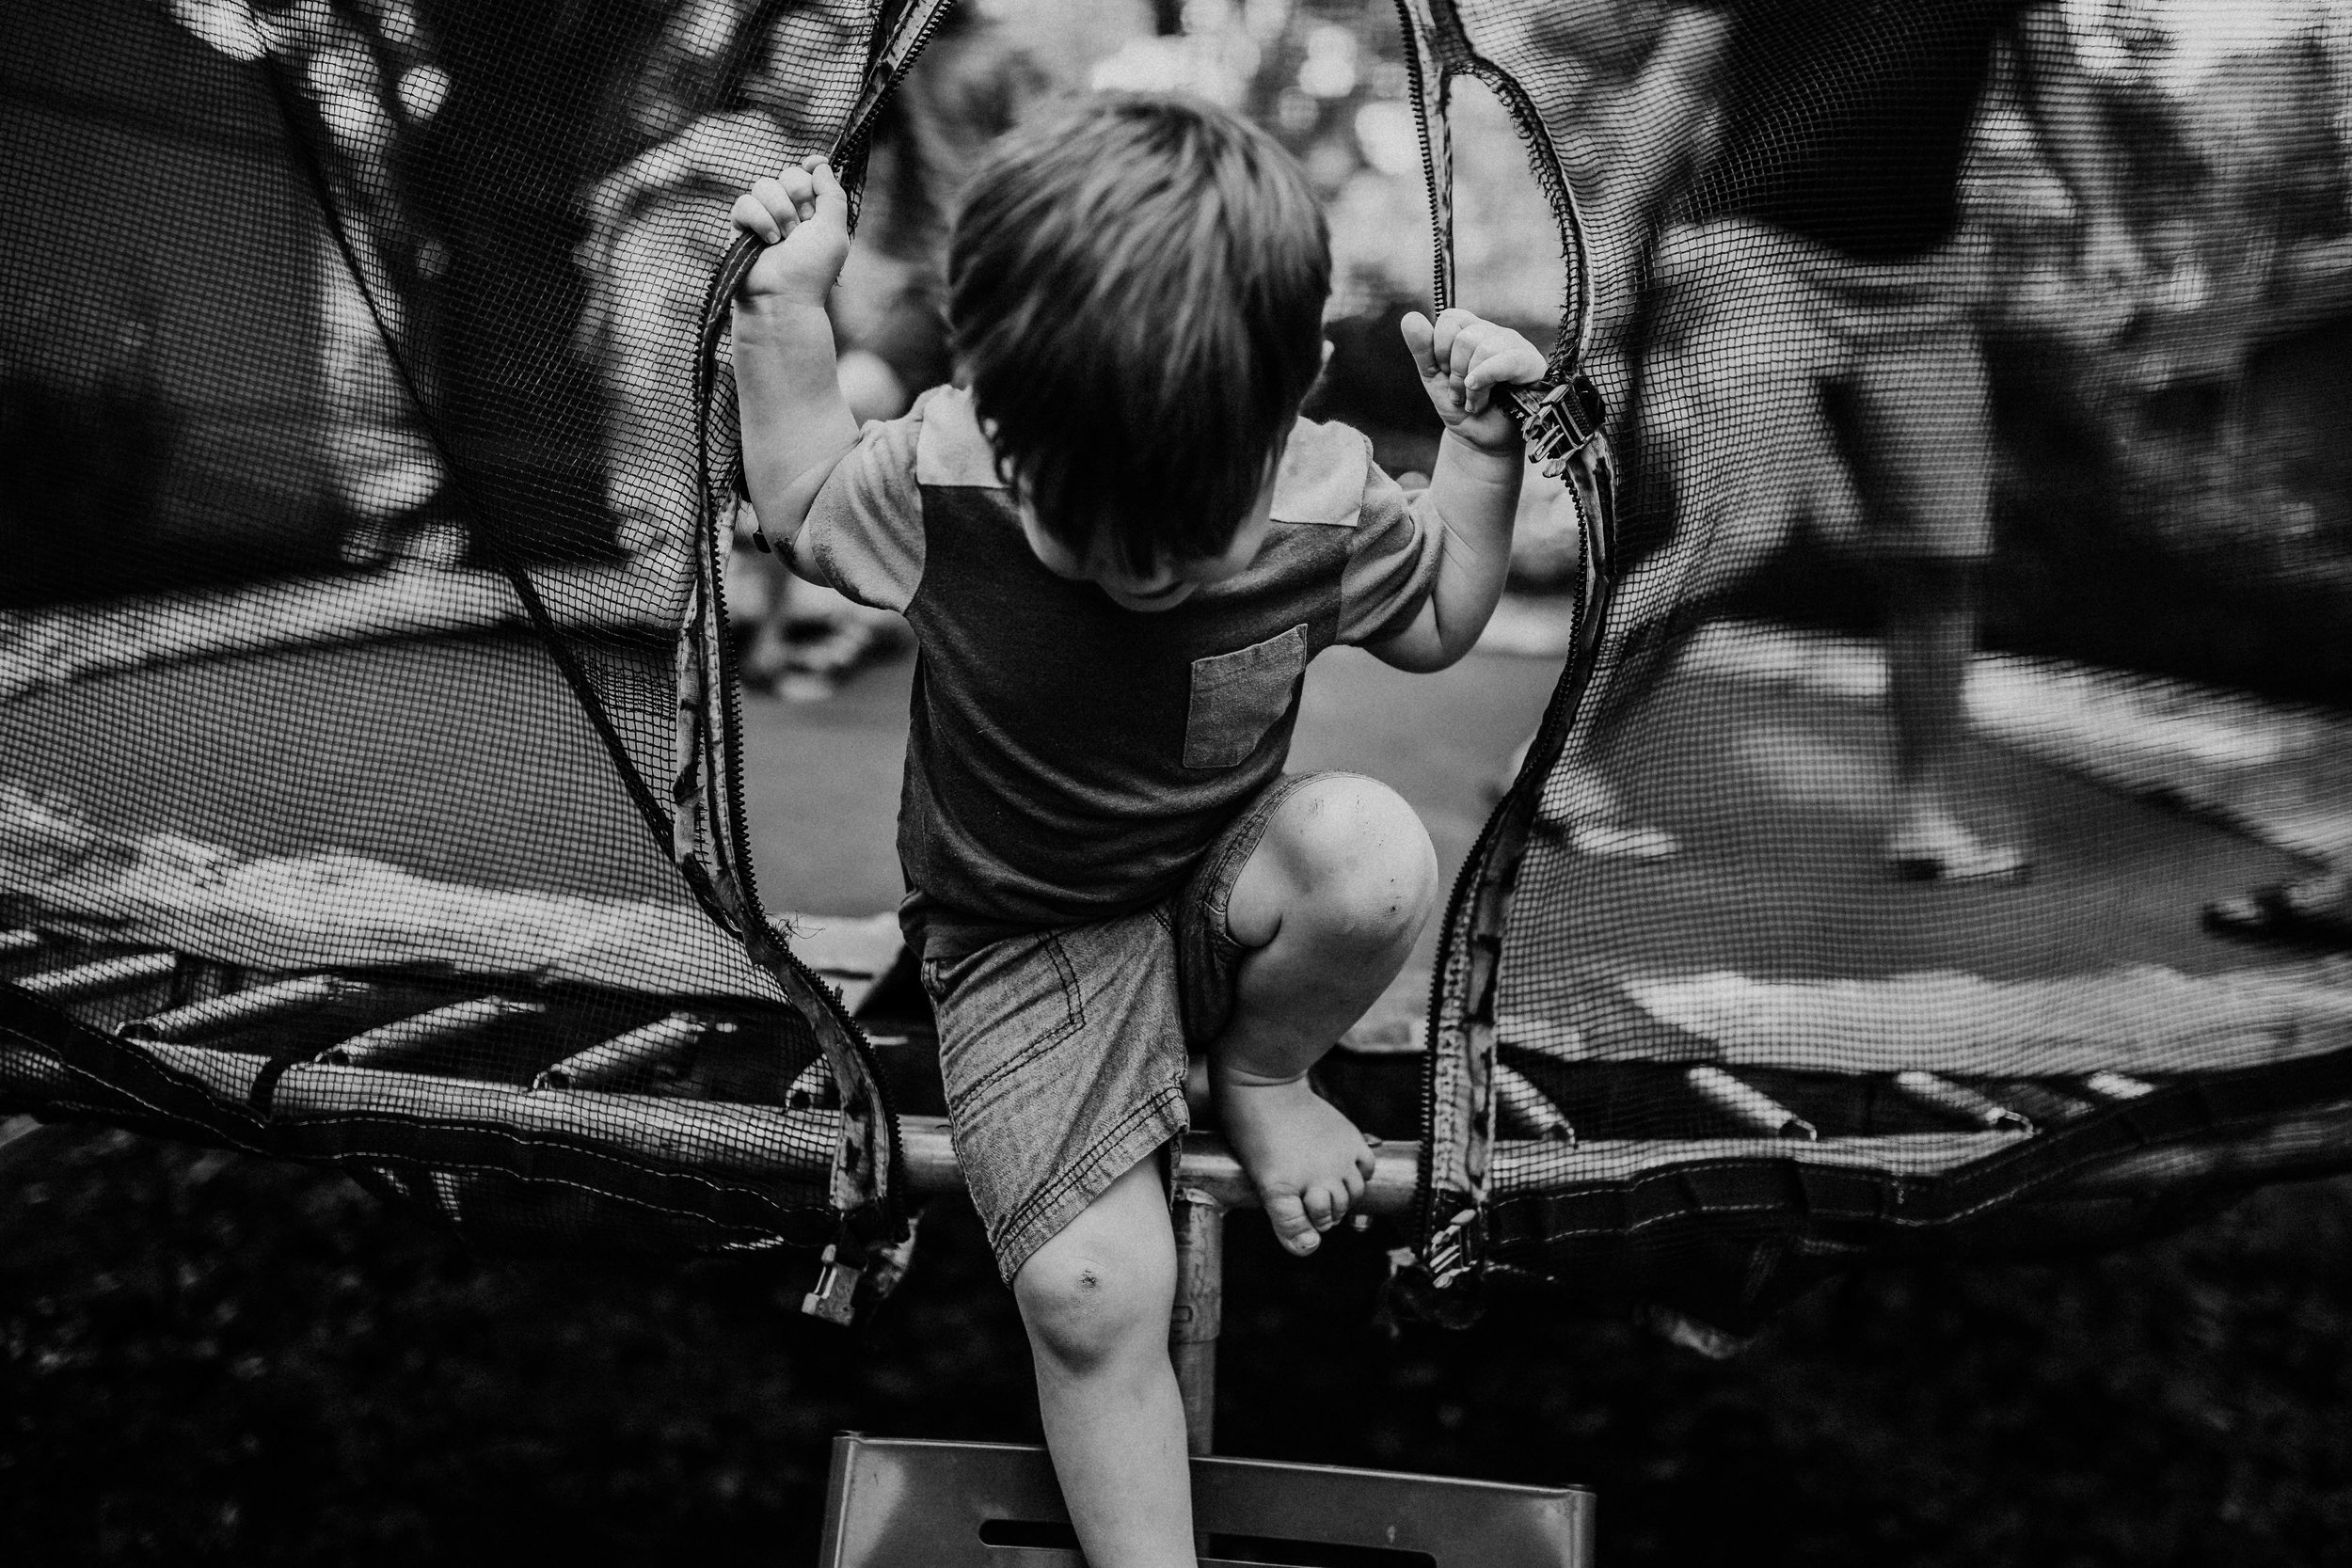 The youngest little boy climbs off the trampoline.  The Carter Family : Summer in the Backyard | Hannahill Photography | Kansas City, MO | Family photography lifestyle photographer | Wedding photographer Durham North Carolina Raleigh | Birth photographer Documentary